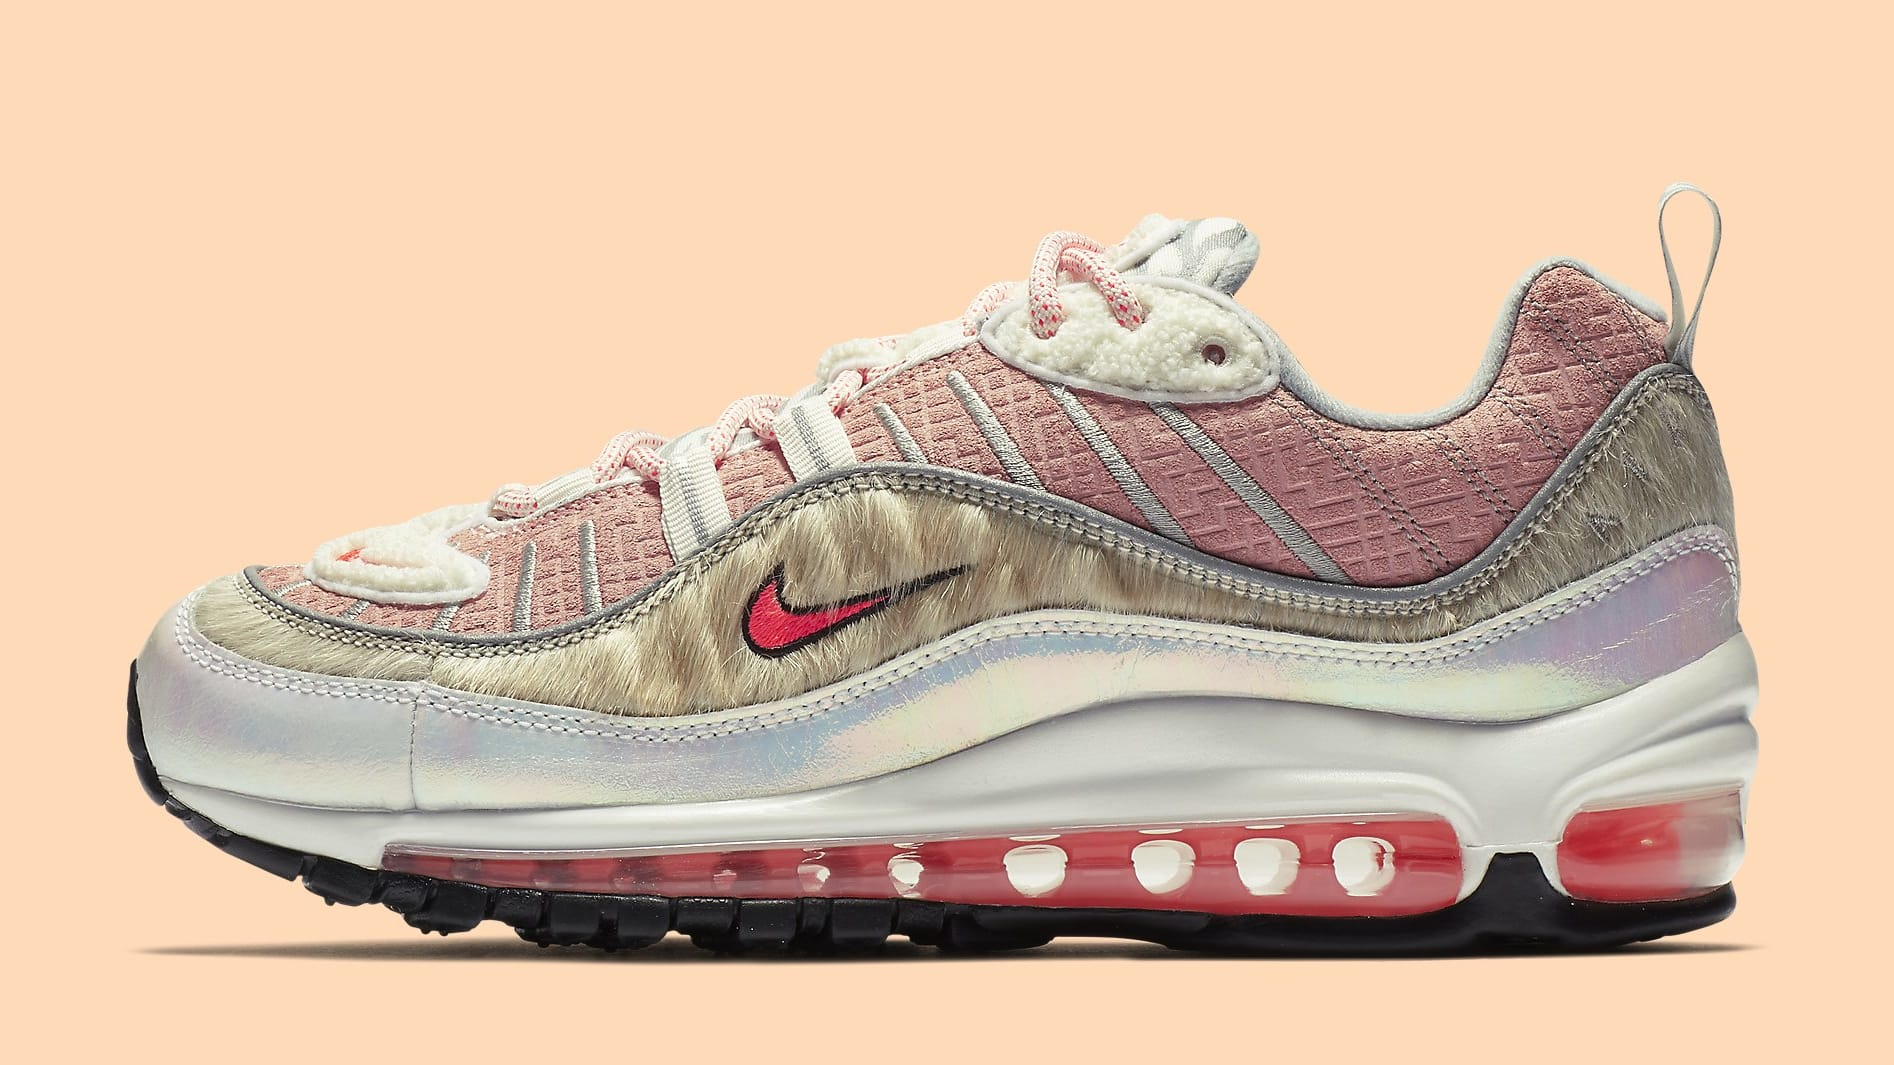 superior quality c0583 4c306 Nike Air Max 98 'Chinese New Year' Release Date | Sole Collector